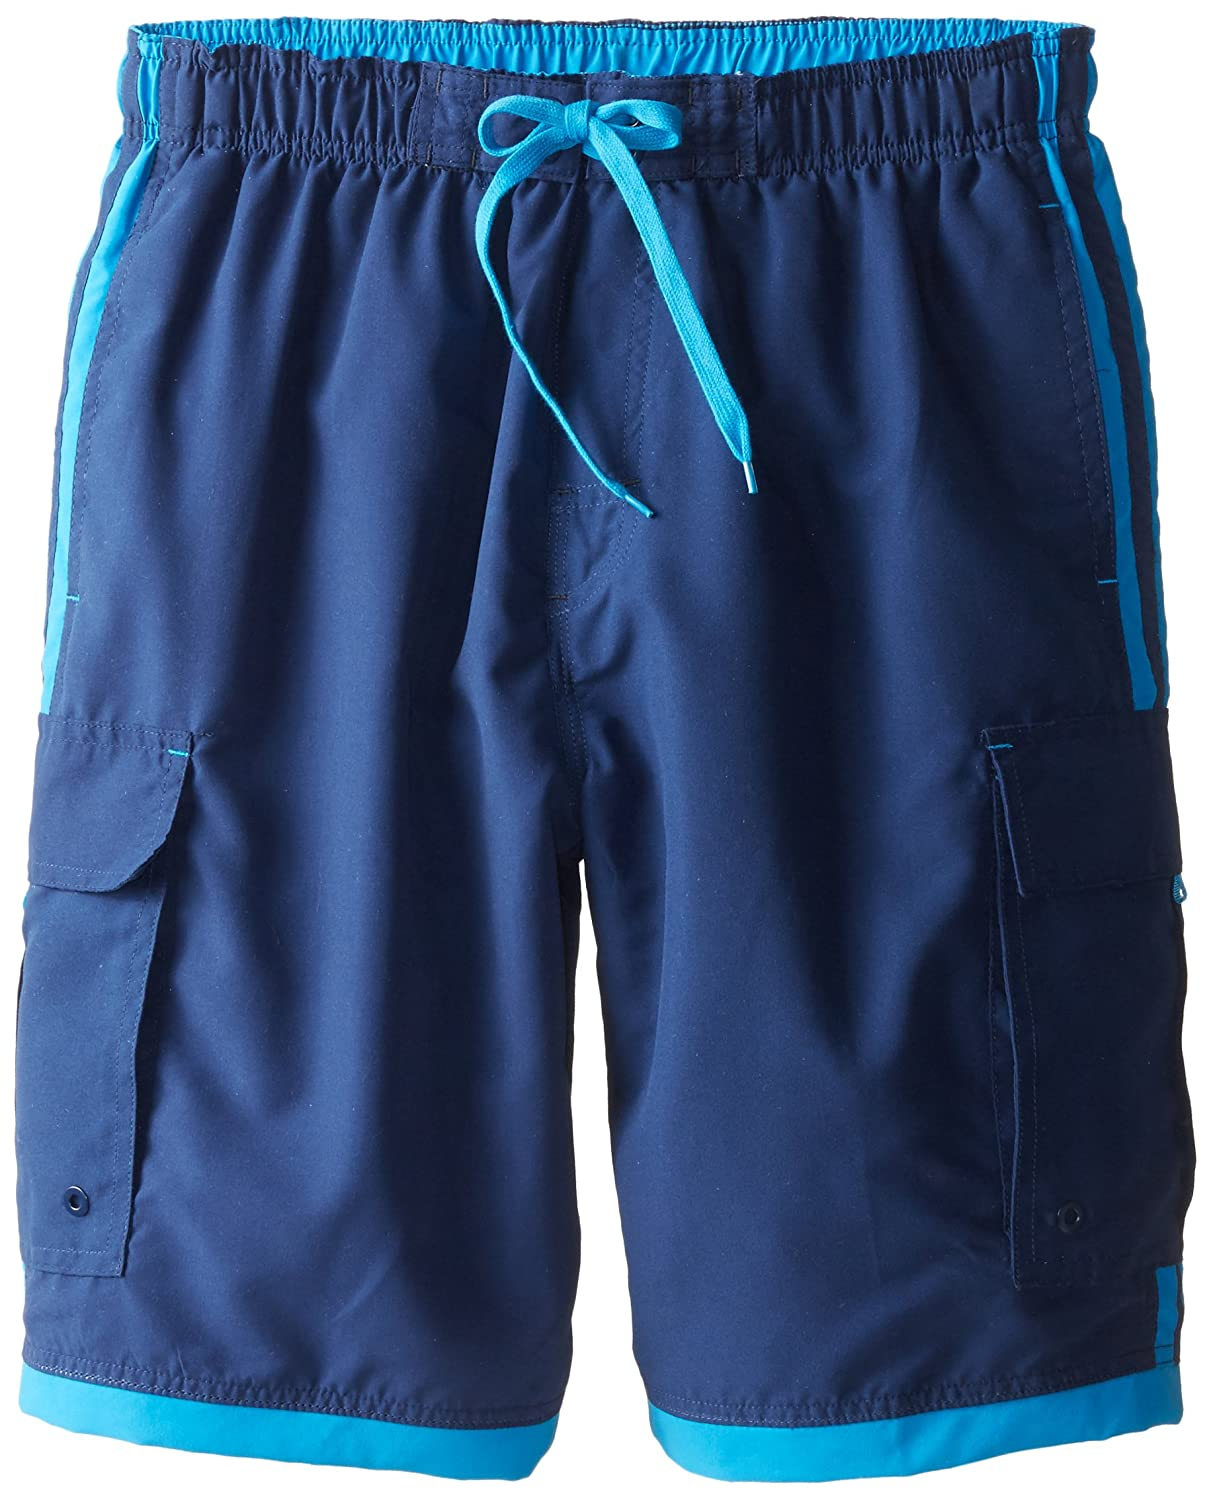 Burnside Men's Impersonator Elastic Waist Swim Trunk Burnside Young Men's AZBD9401B